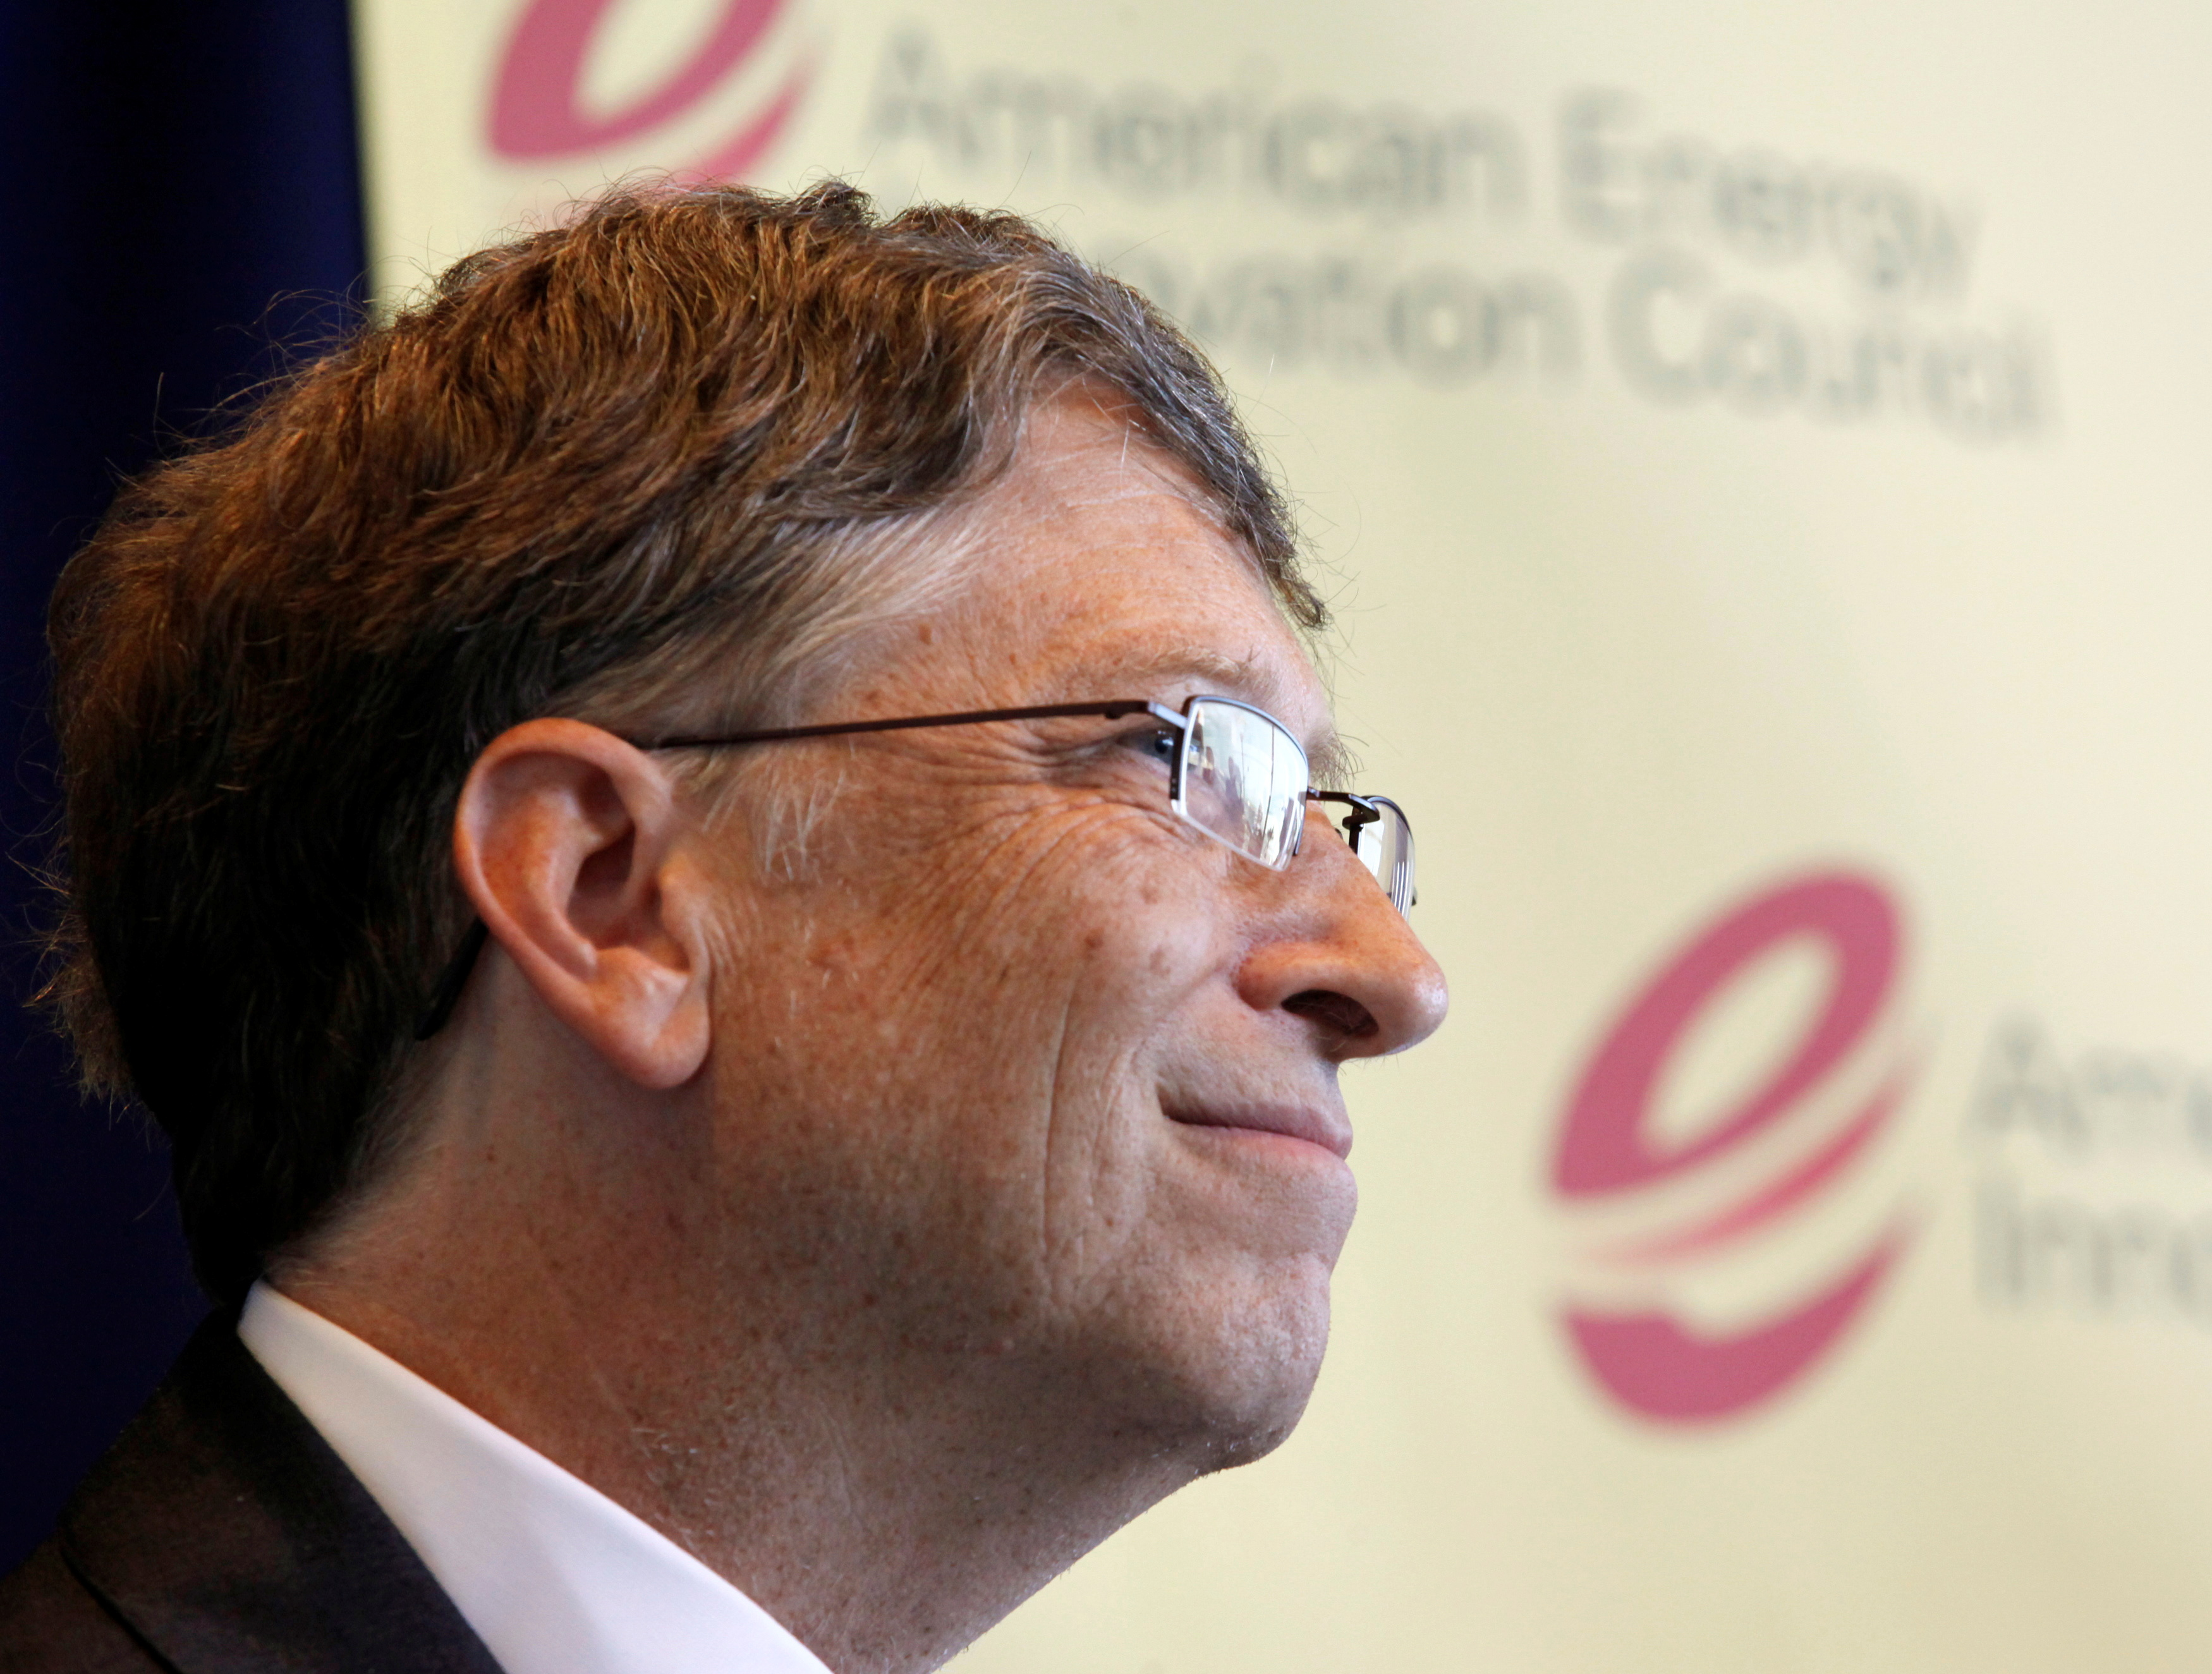 Microsoft Chairman Bill Gates listens during a news conference with fellow U.S. executives about their group's recommendations to Congress and the president to revolutionize U.S. energy innovation at the Newseum in Washington June 10, 2010. REUTERS/Richard Clement